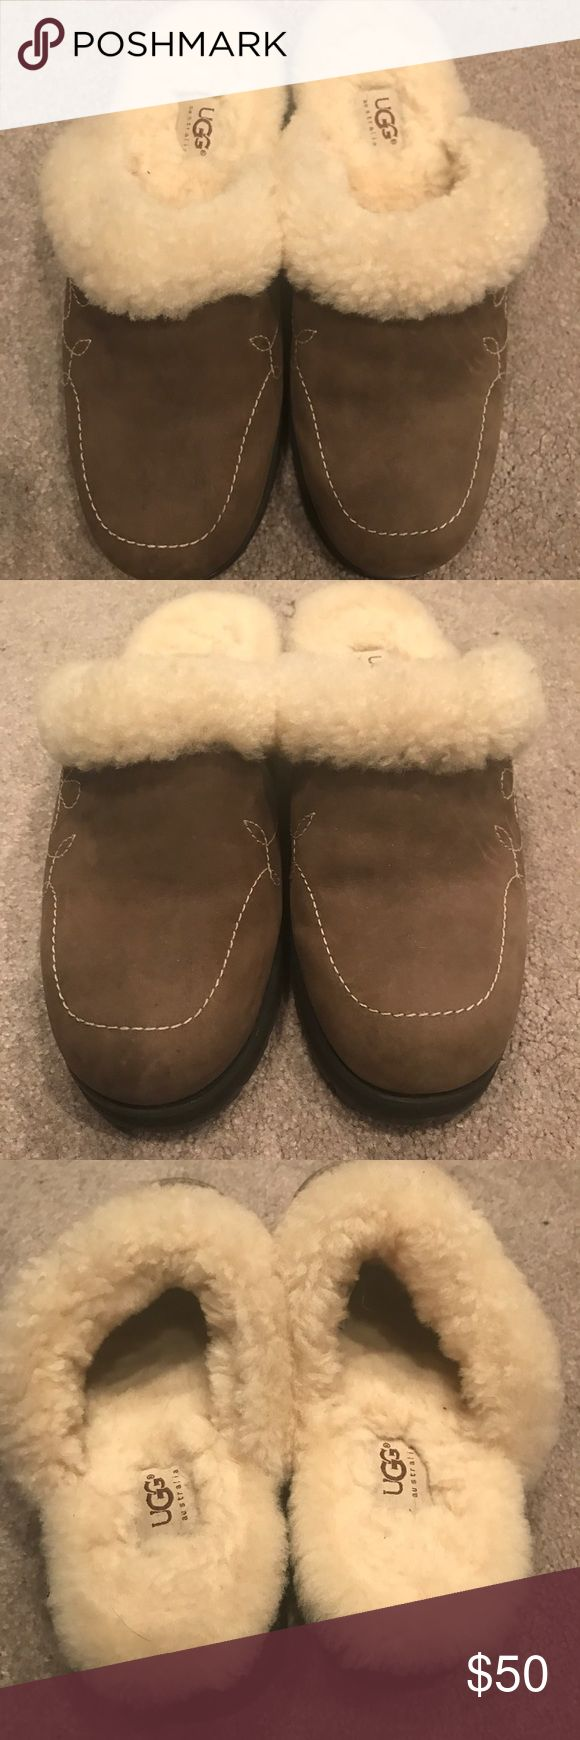 "UGG Chestnut Slip On Shoes Size 10 Authentic UGG Chestnut Slip On Shoes Size 10, Fur & Shoes In Great Condition, Block Heel Measures 1 3/4"" UGG Shoes Mules & Clogs"